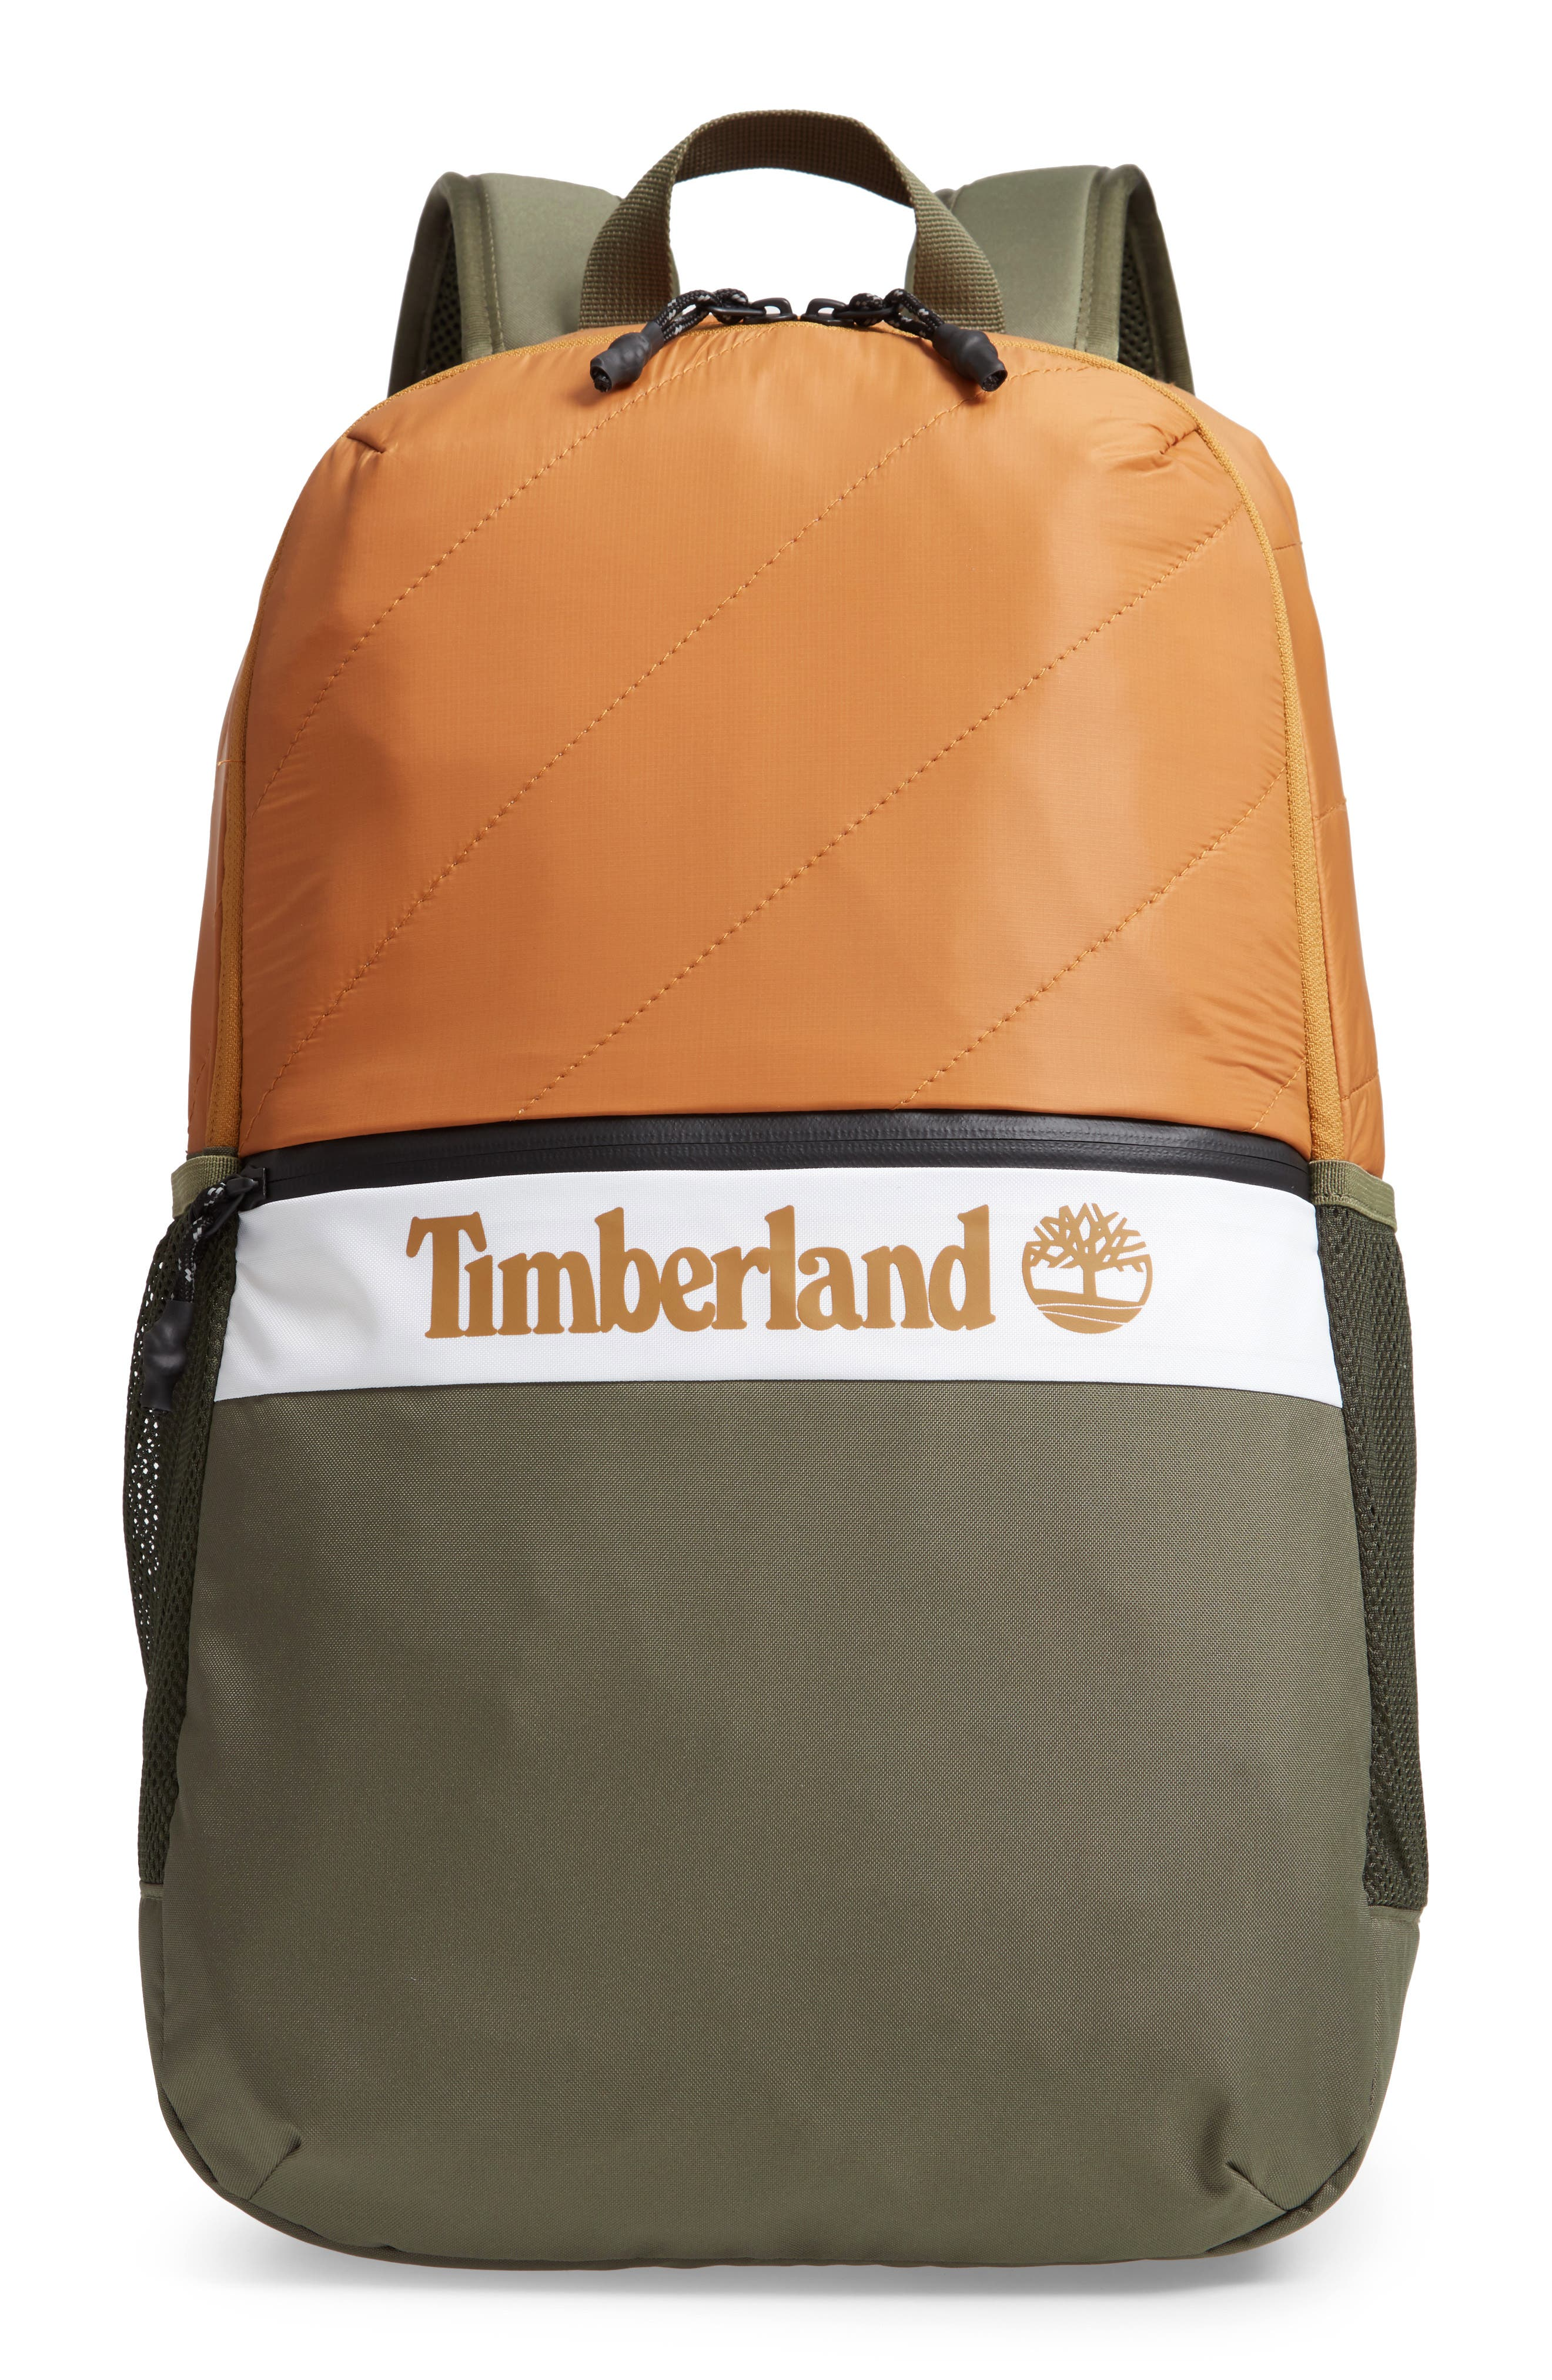 Timberland Top Zip Backpack - Beige